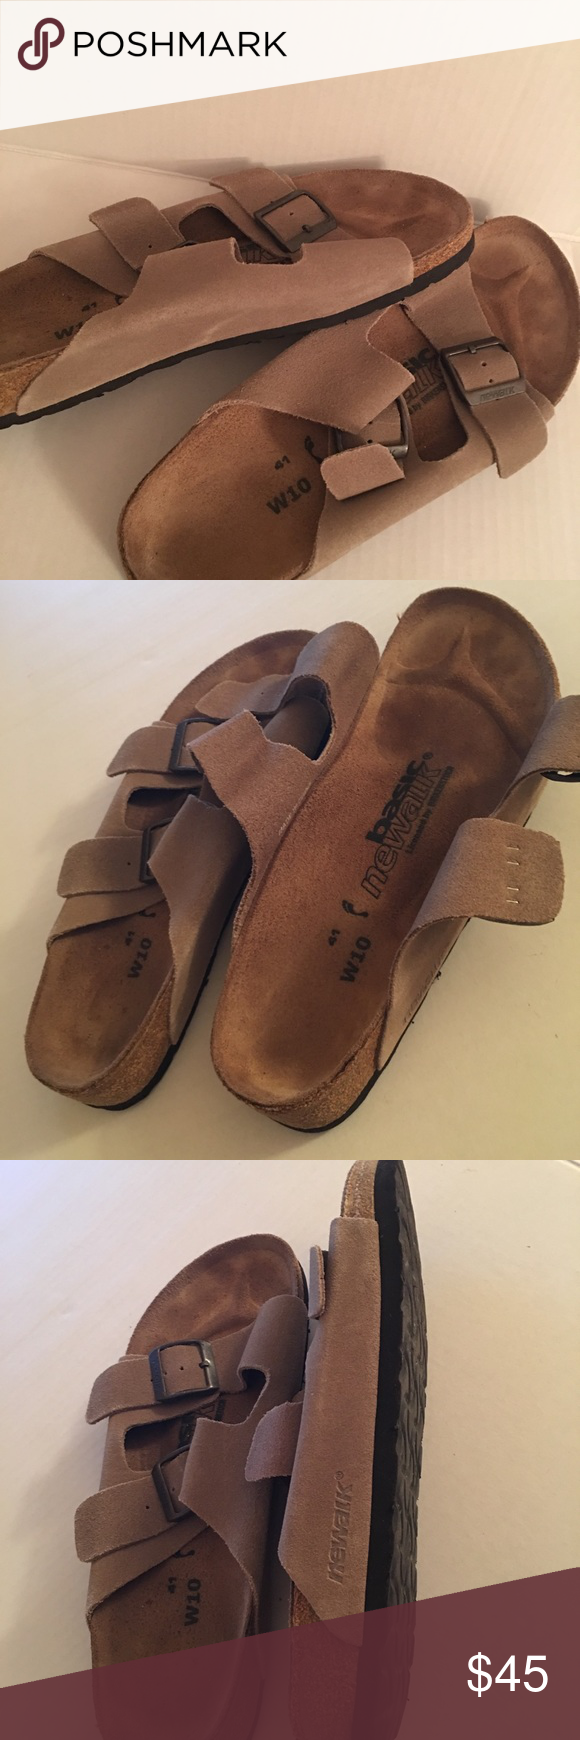 2d74276b5c30 Size no real signs of wear basic newark birkenstocks these are real  birkenstocks birkenstock shoes sandals